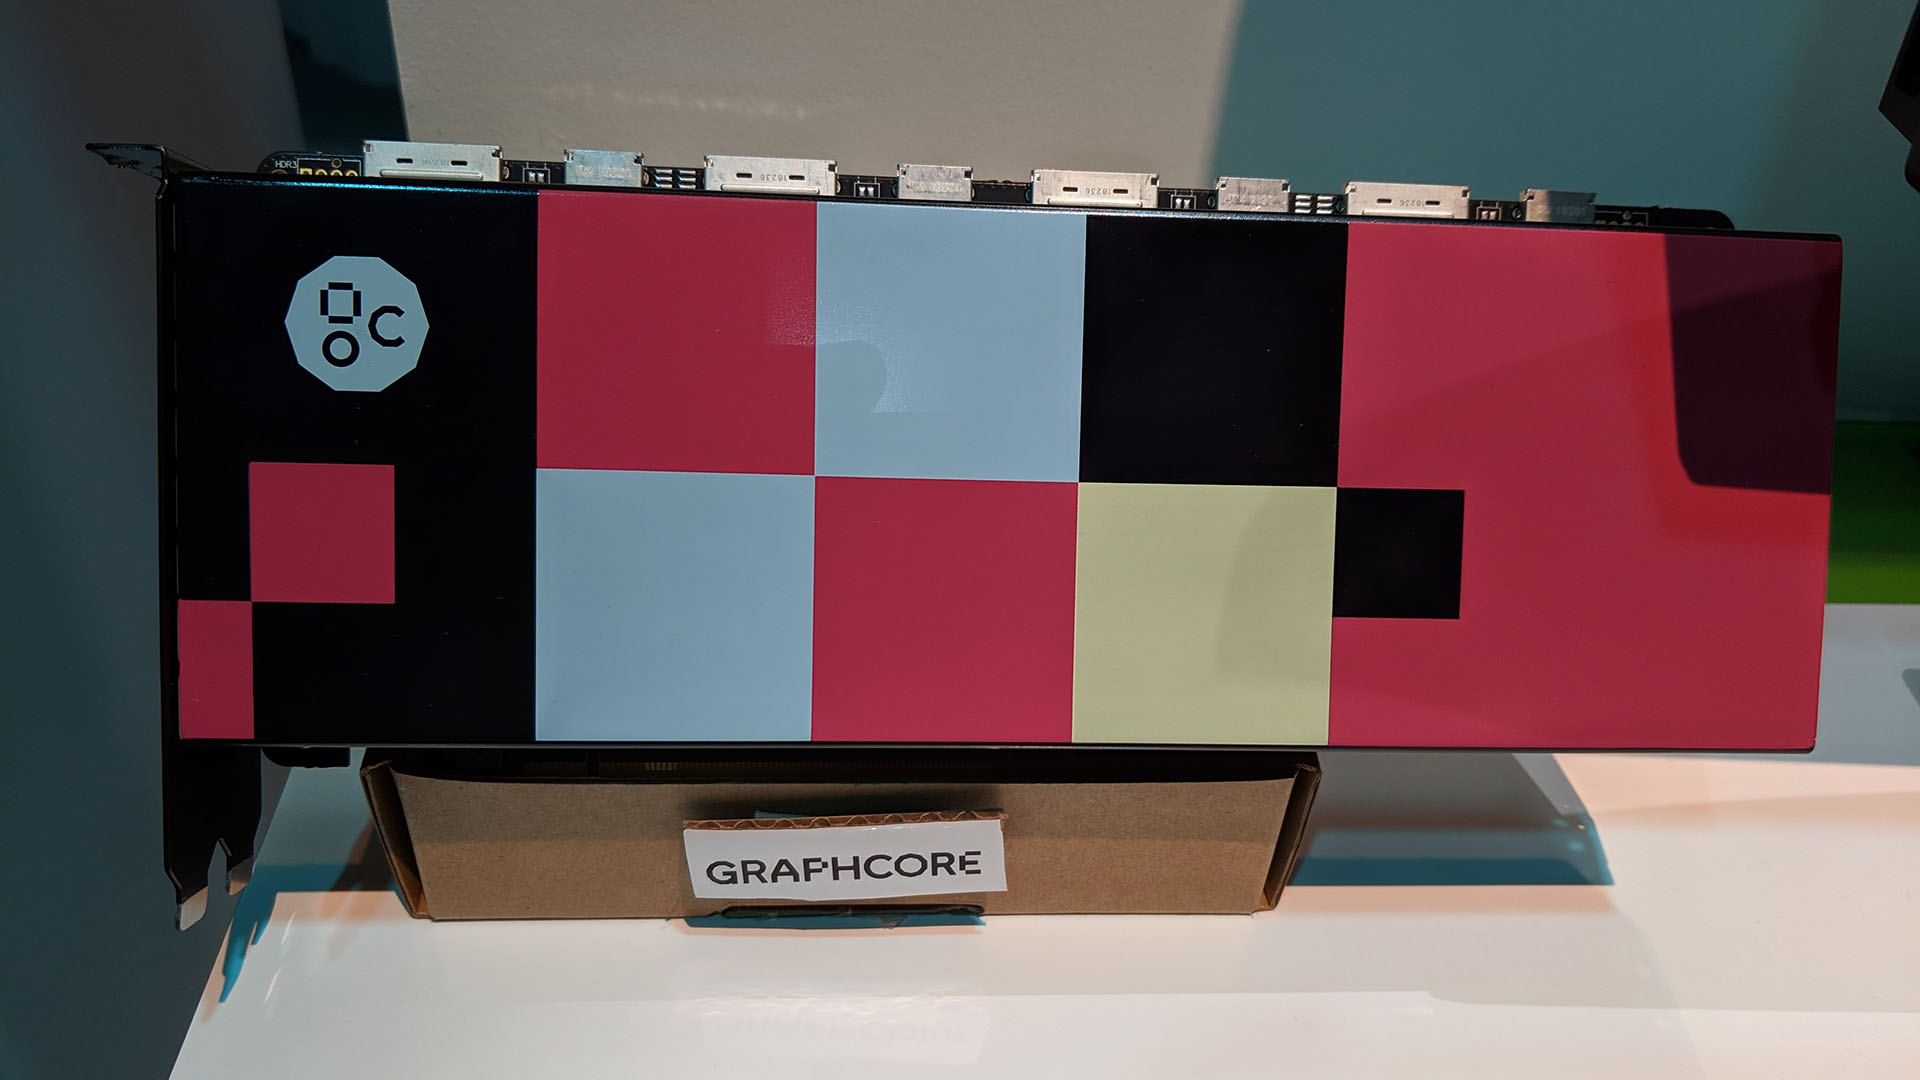 Graphcore At DTW On Cardboard Stand